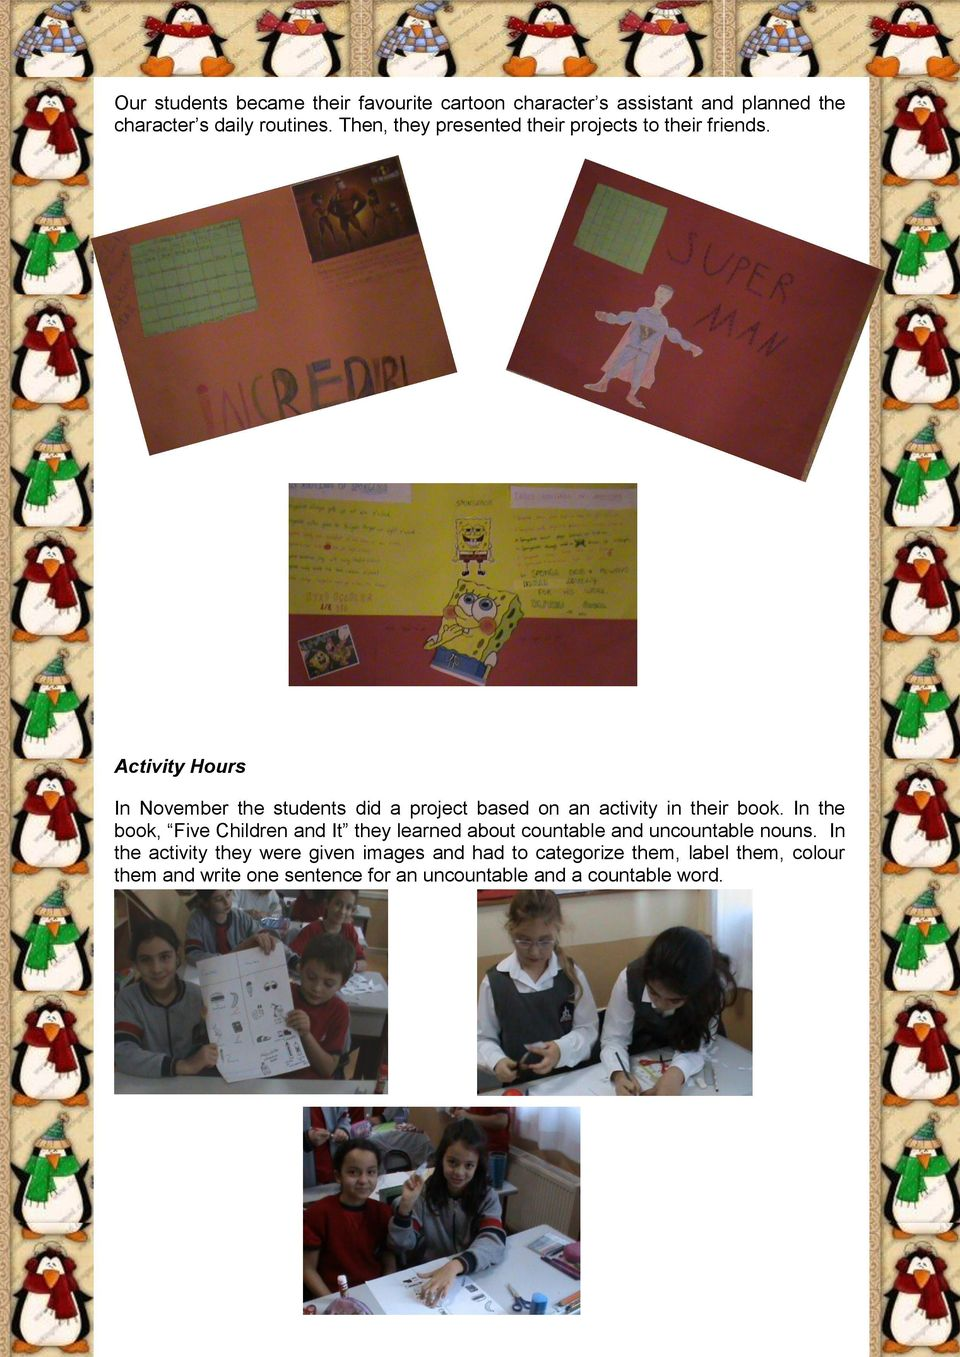 Activity Hours In November the students did a project based on an activity in their book.